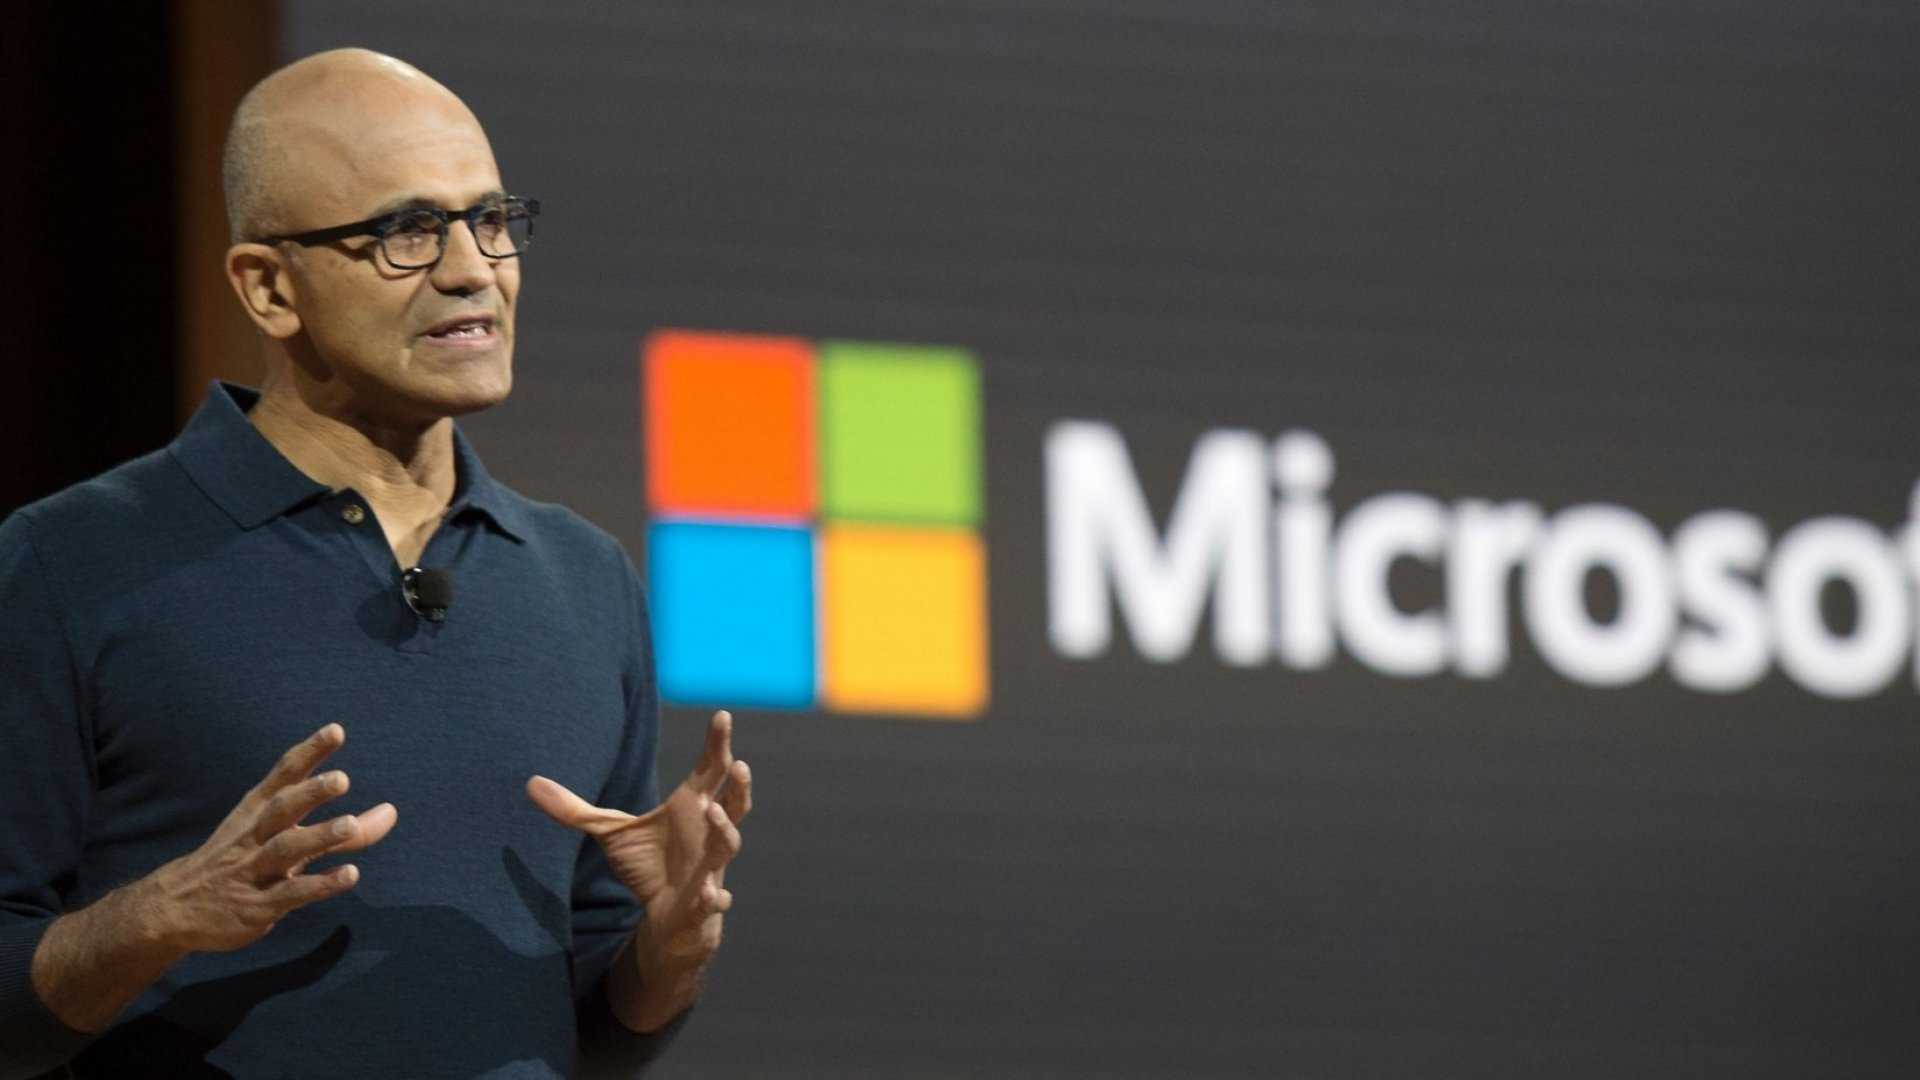 How This Robot in Microsoft Teams Helps Your Team